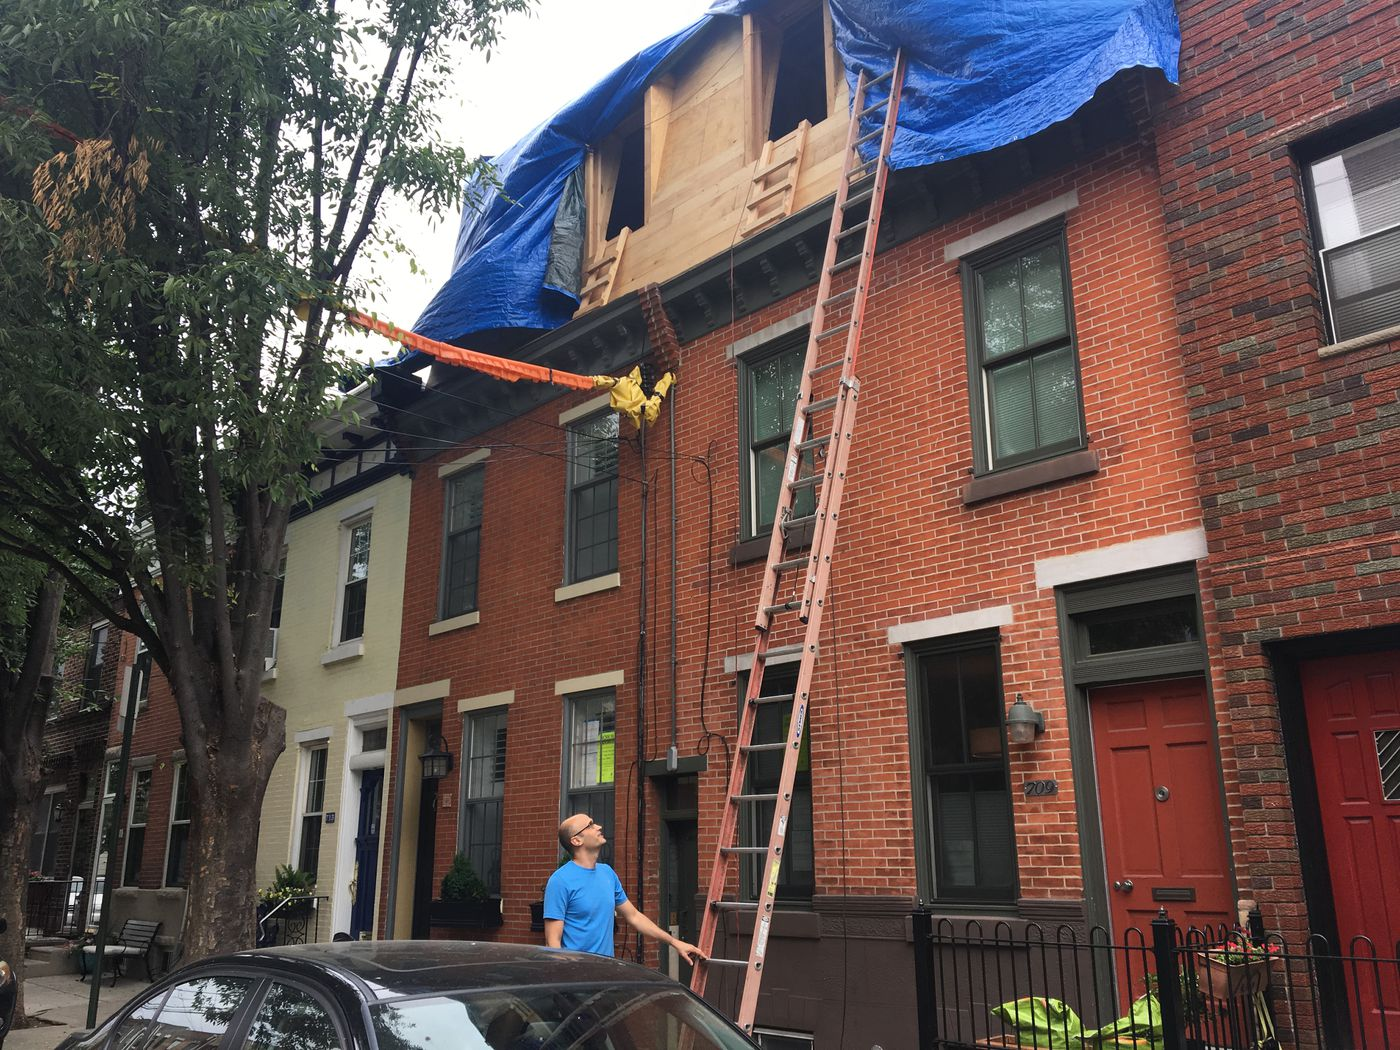 When trading up isn't an option, Philadelphia rowhouse owners build on